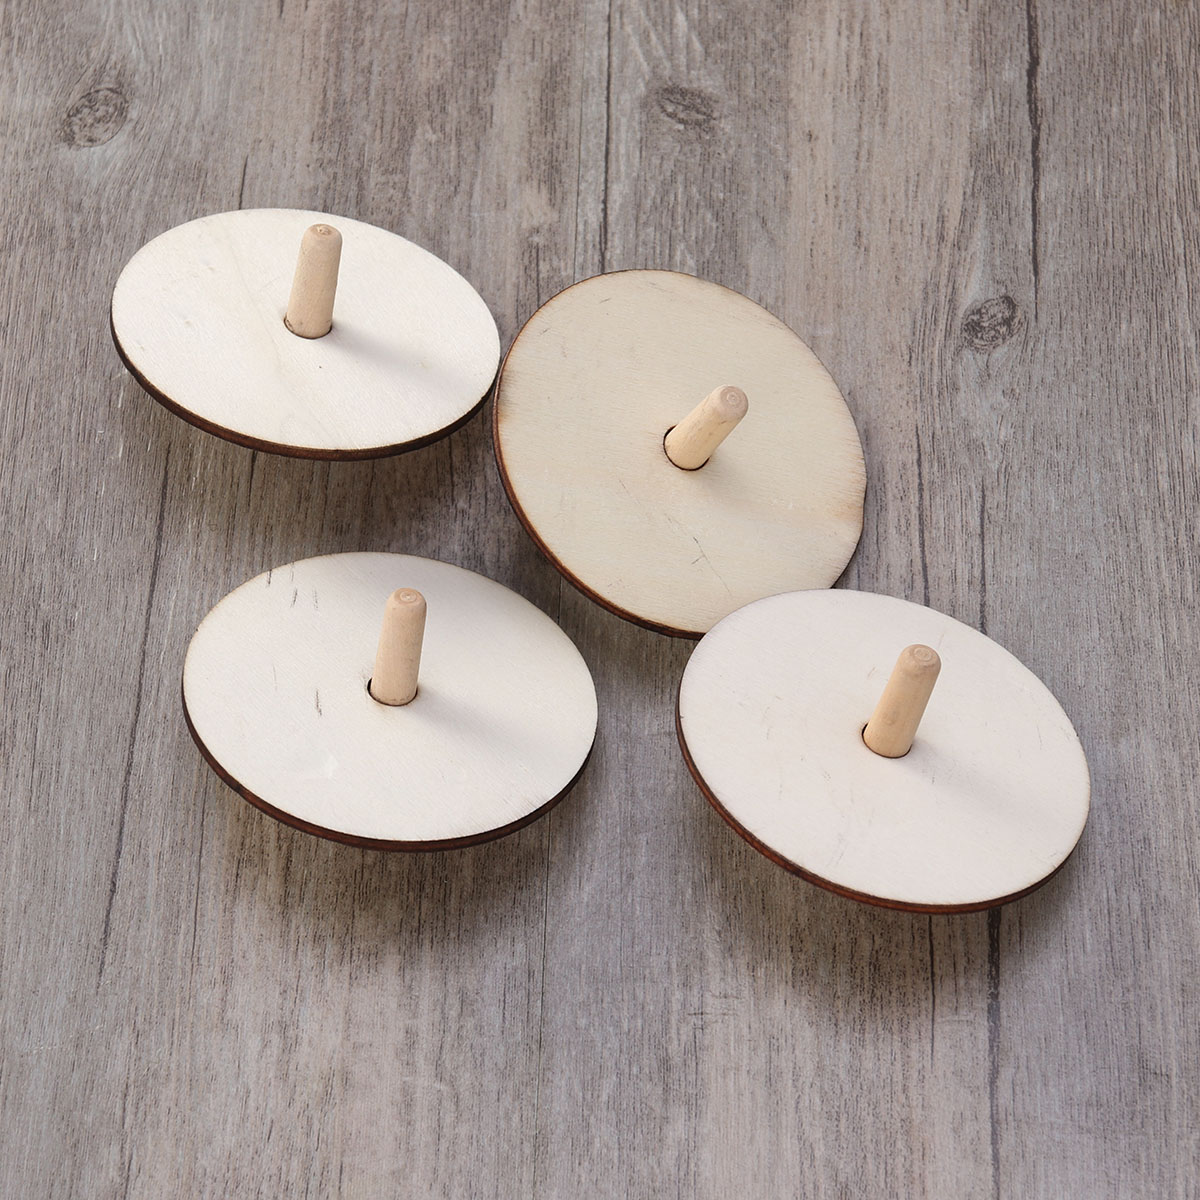 4pcs Unfinished Spinning Top DIY Painting Wooden Gyroscope Peg-top Toy for Kids Children Toddler(China)